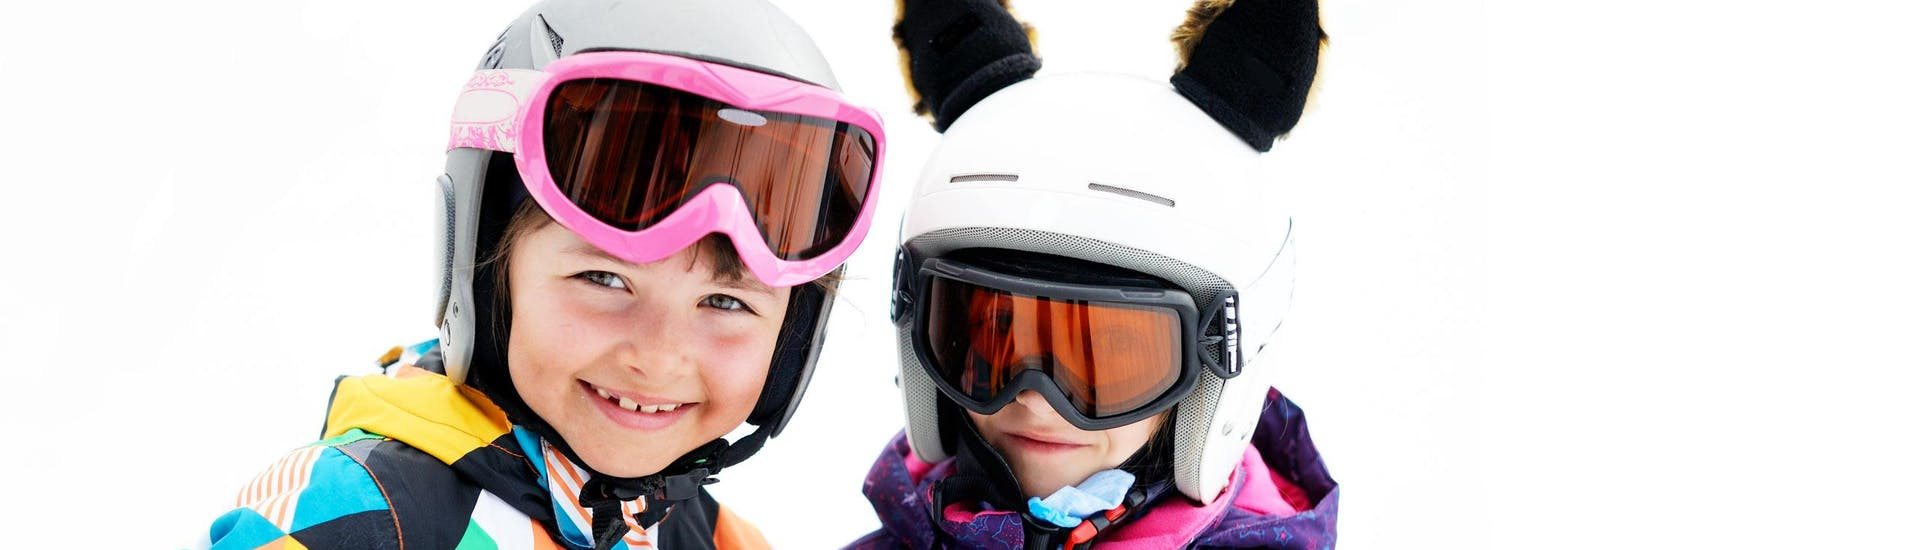 Two young children smiling at the camera during one of the Private ski lessons for kids organised by Skischule SKI-PERFORMANCE.